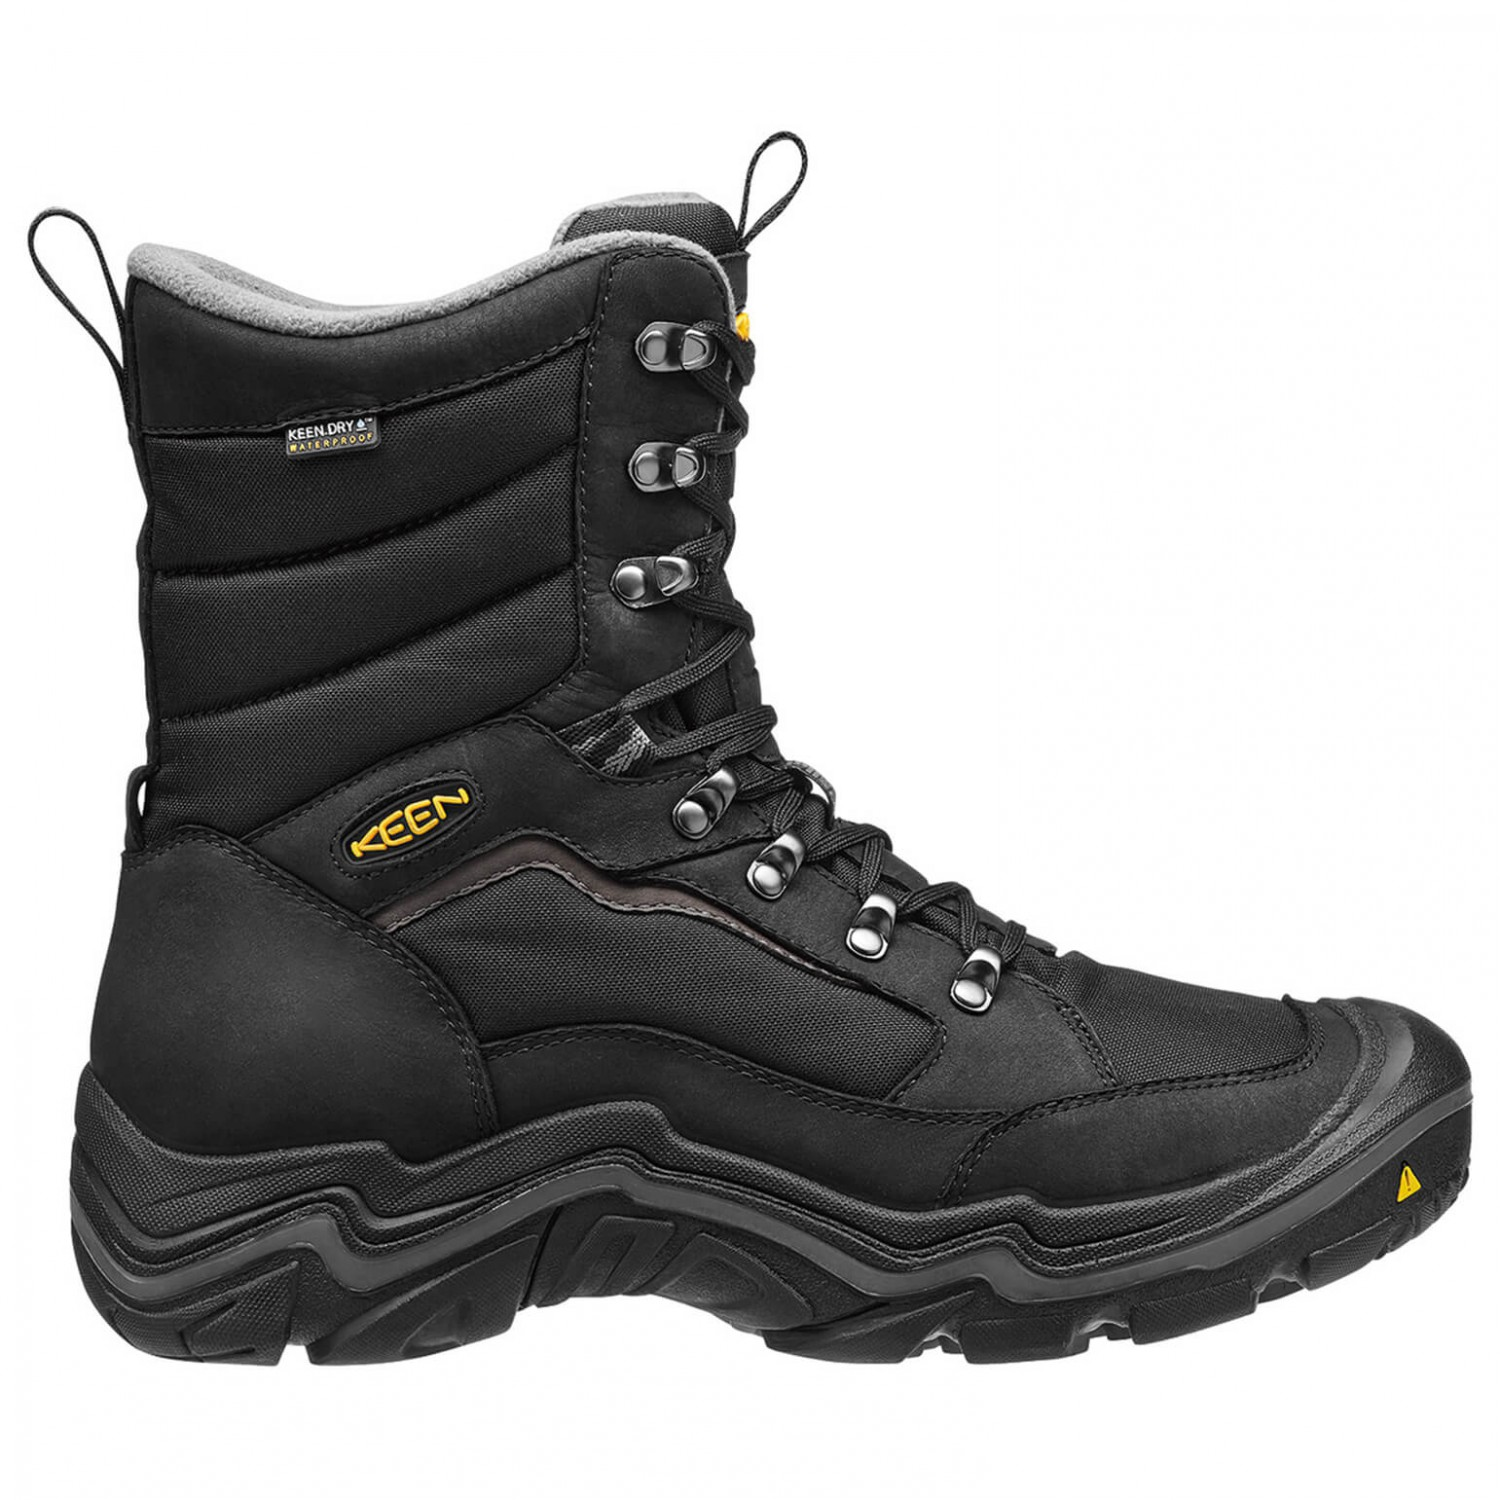 Keen Durand Polar EU - Winter Boots Men's | Buy online